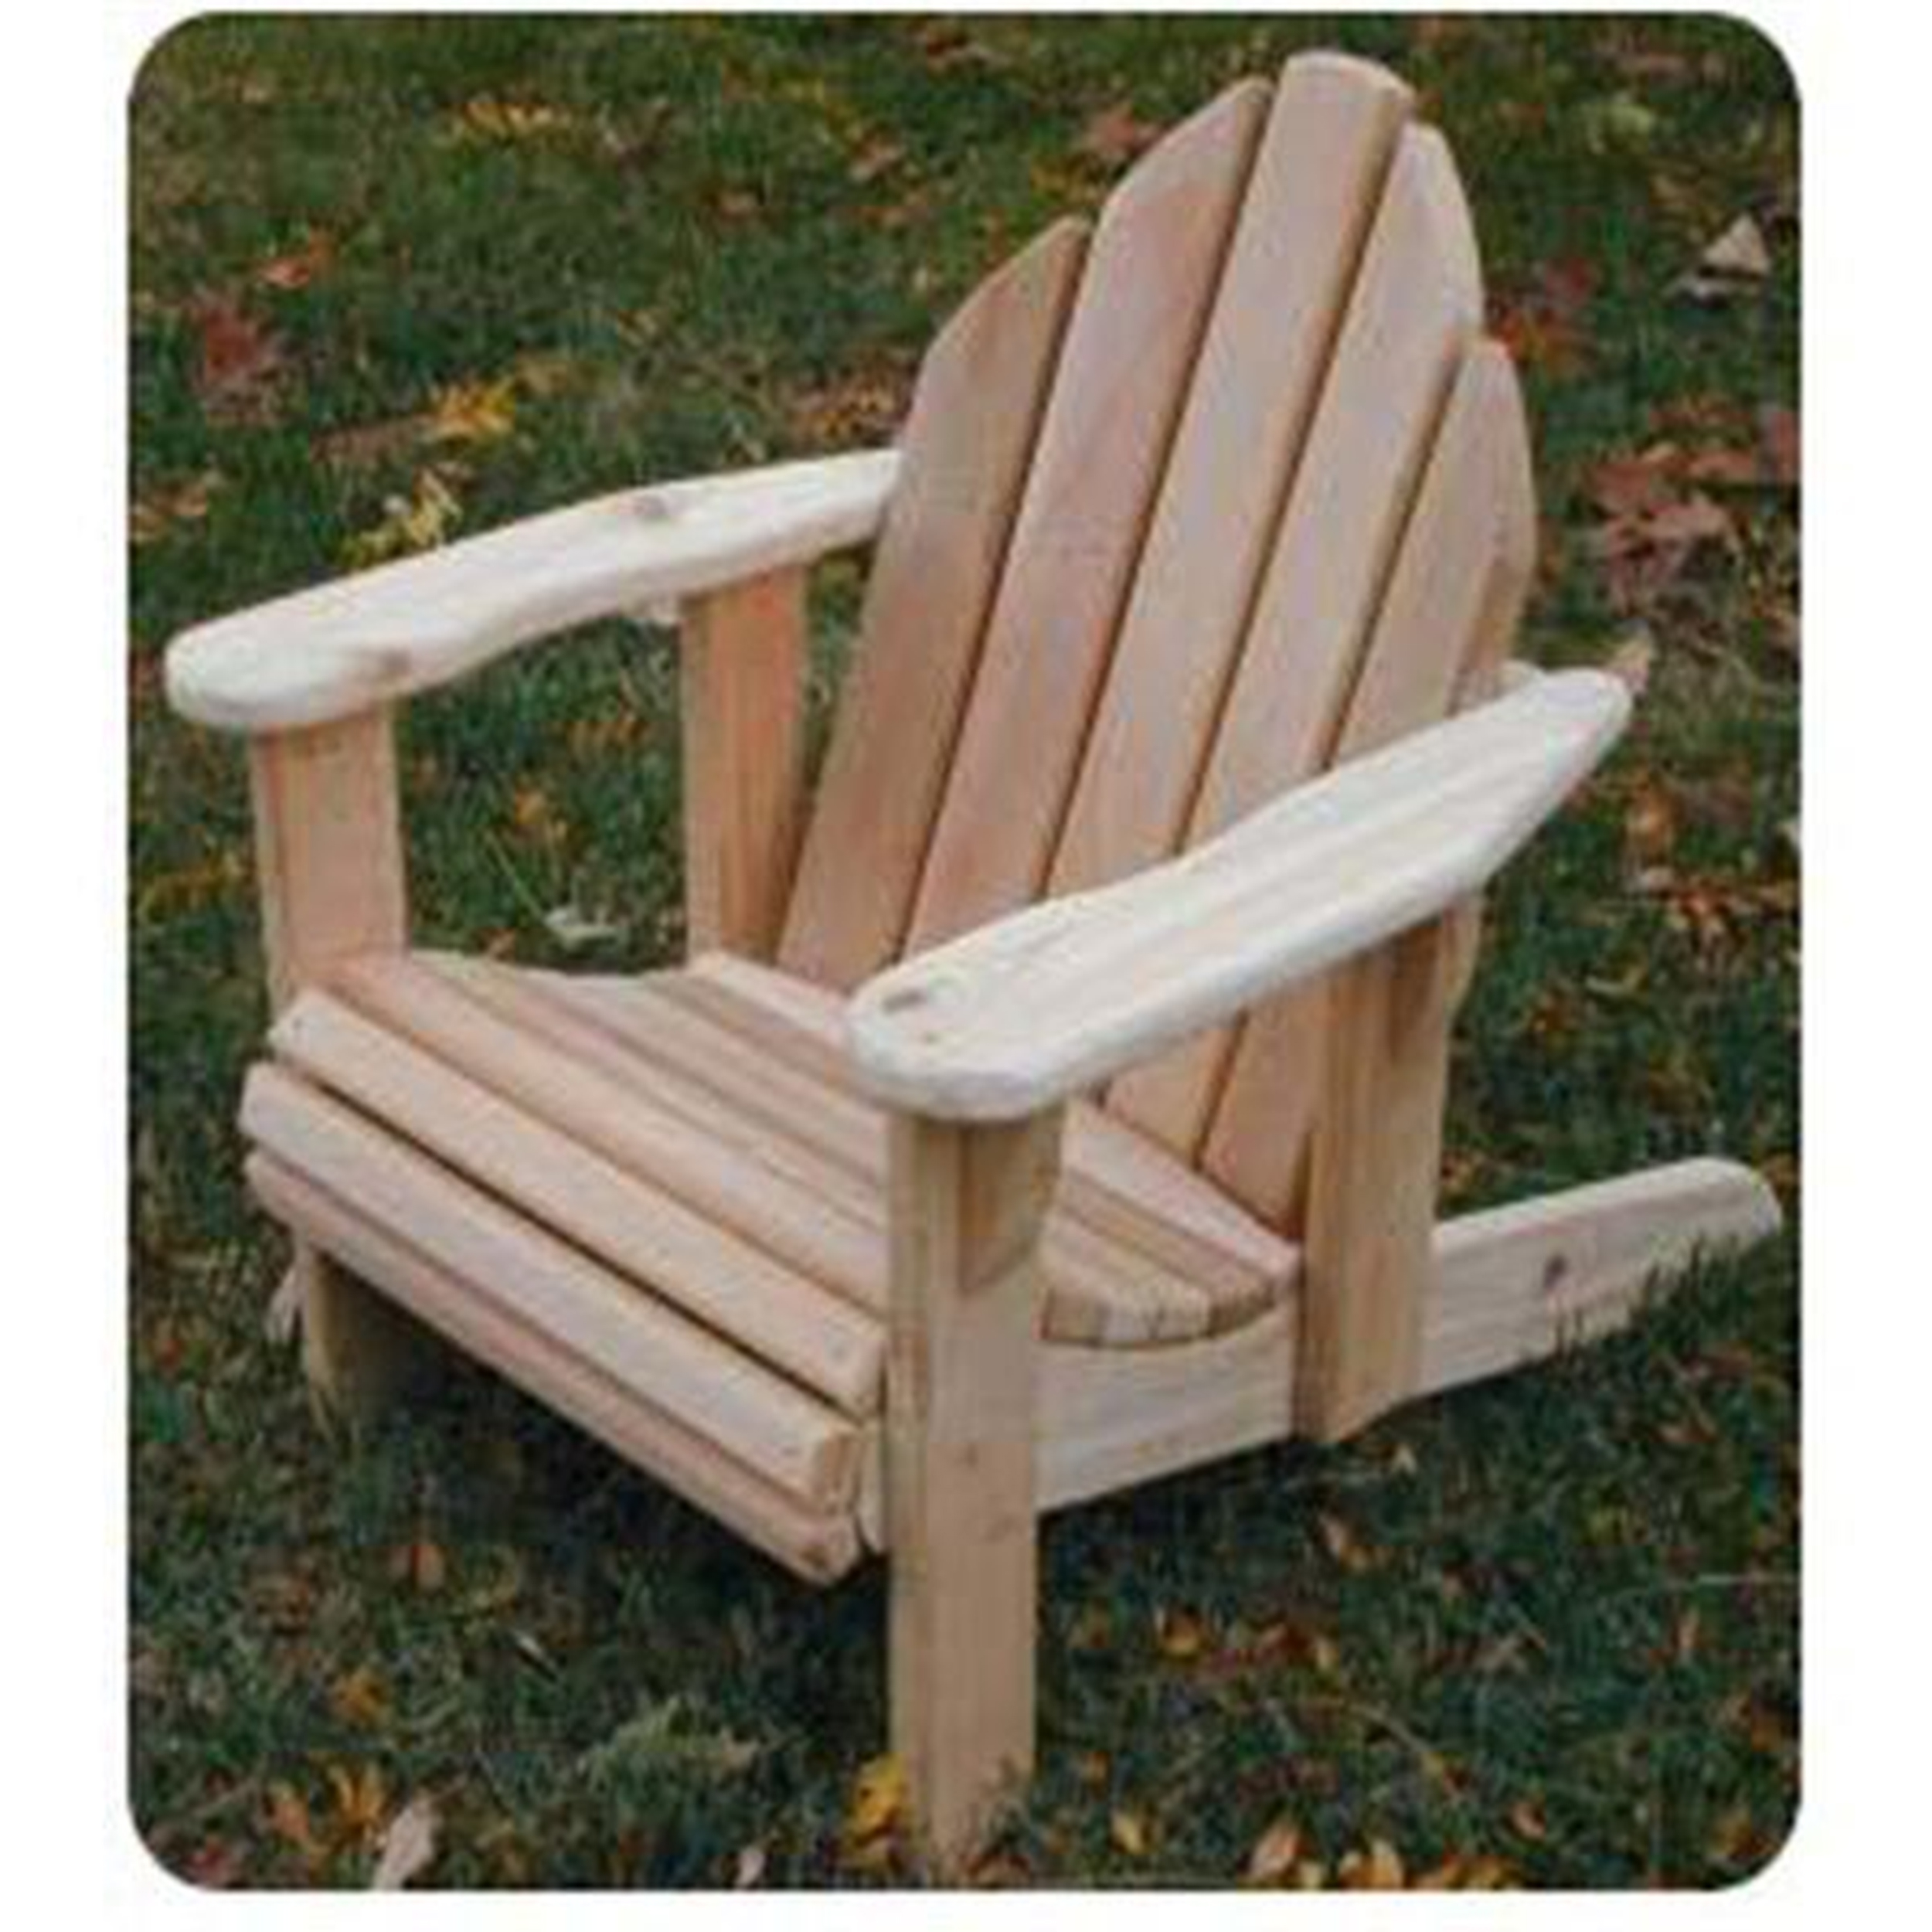 Woodworking Project Paper Plan to Build Child-Size Adirondack Chair